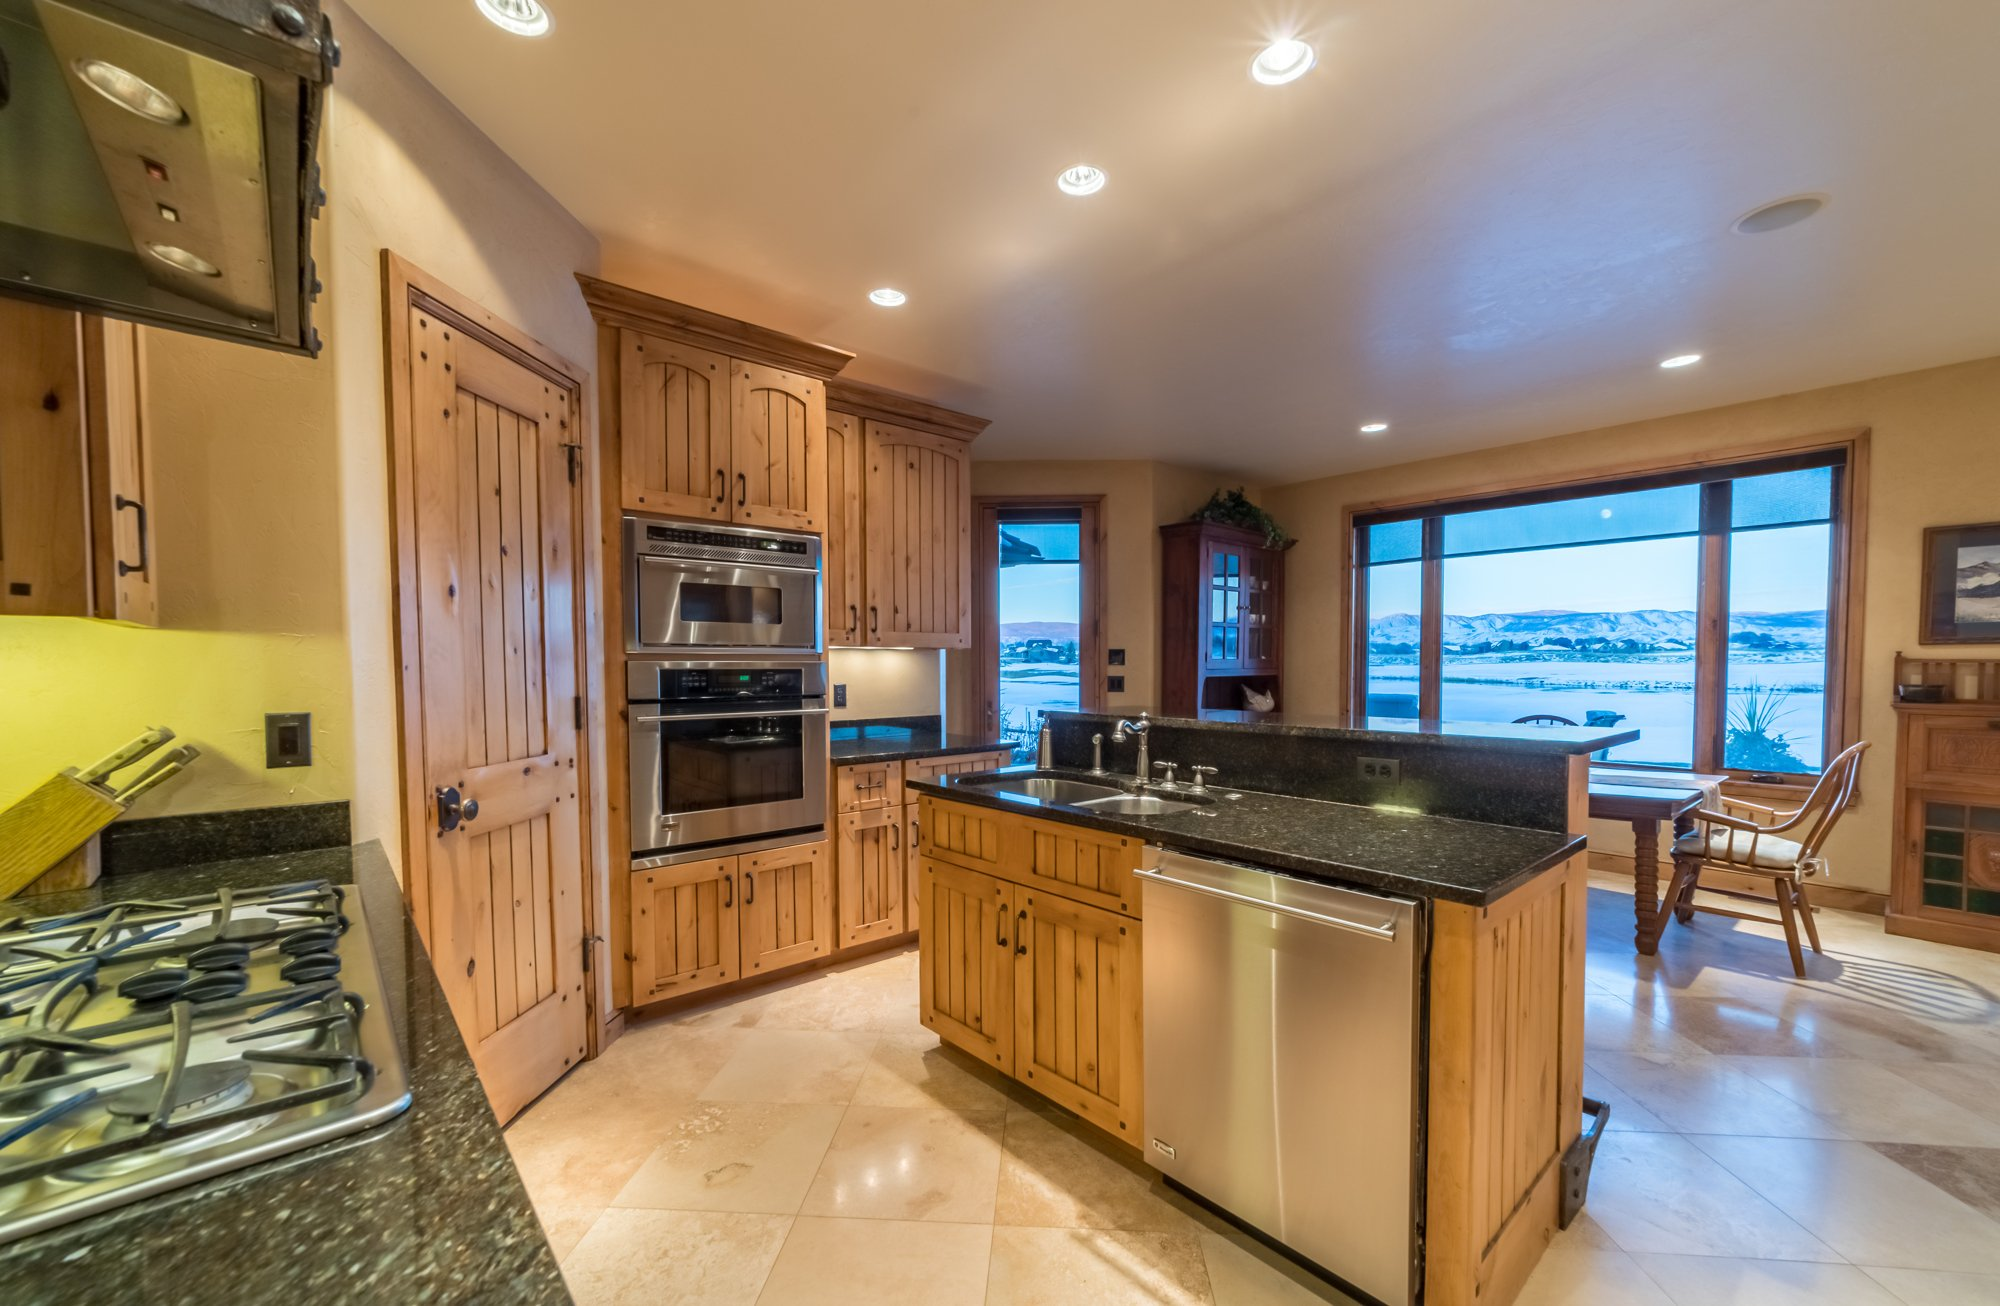 Chef's Kitchen with Stainless Appliances - 2839 Sleeping Bear Rd Montrose, CO 81401 - Atha Team Luxury Real Estate